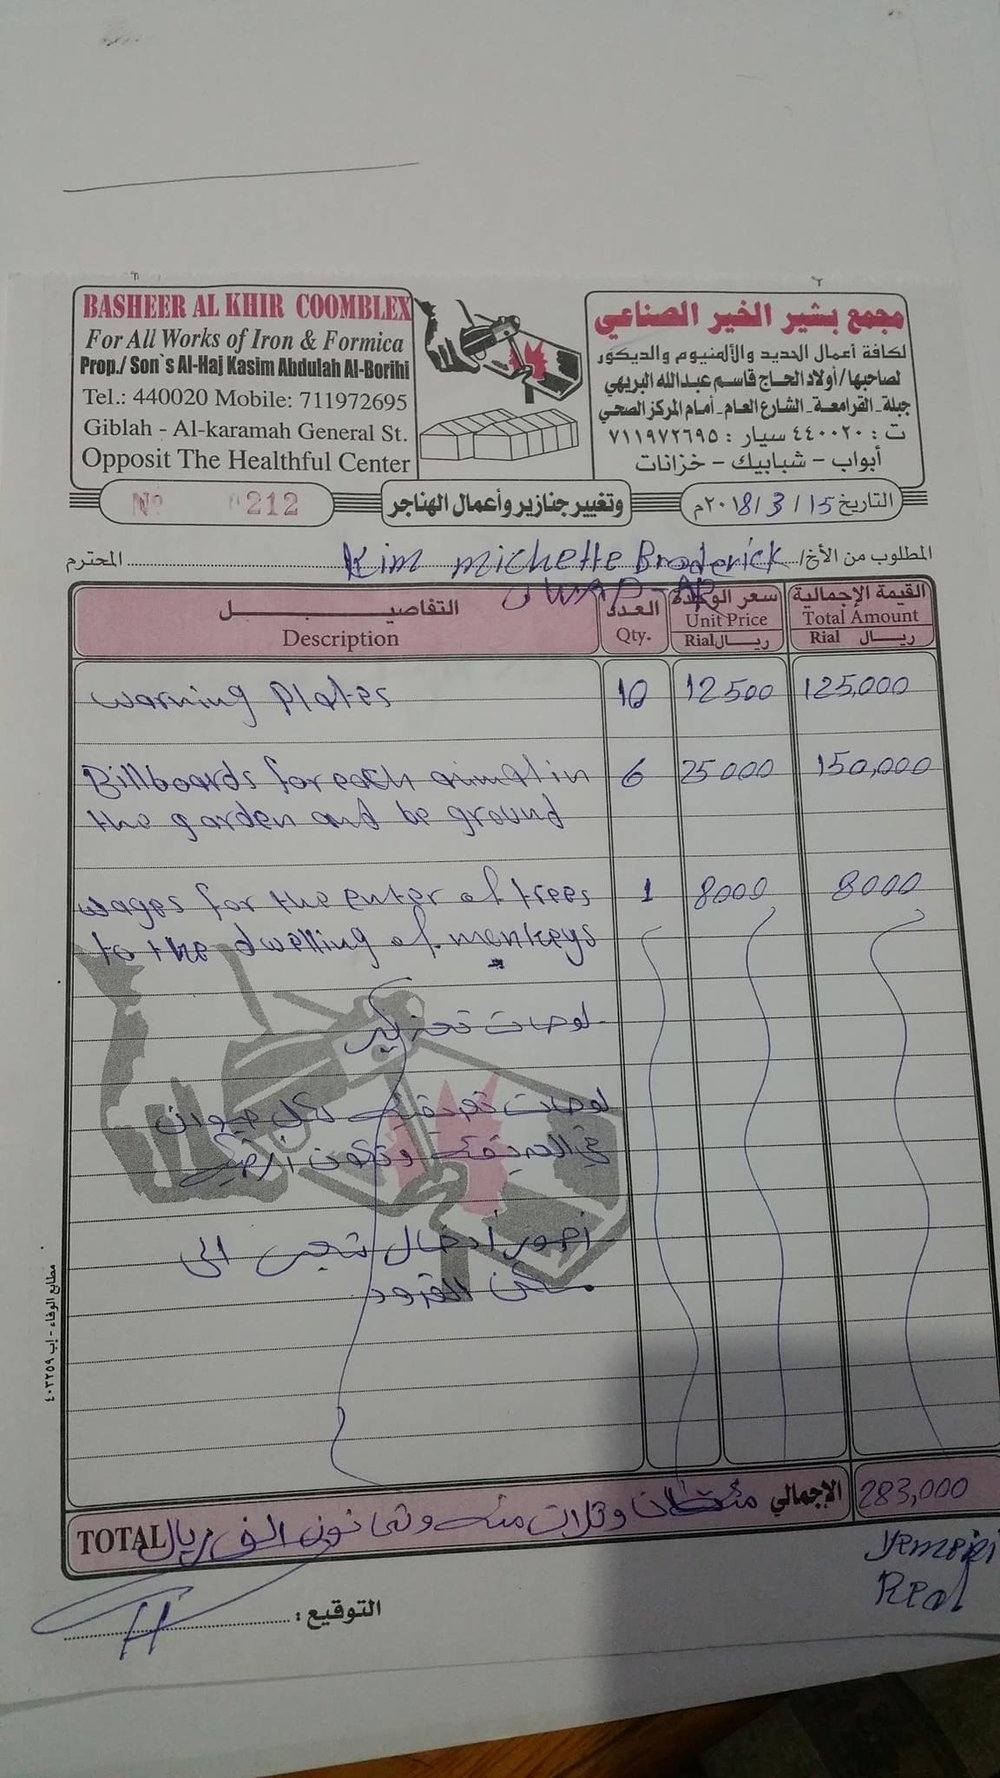 ibb zoo haitham baboon branches and warning signs project 15 MARCH 2018 correct INVOICE for OWAP AR .jpg